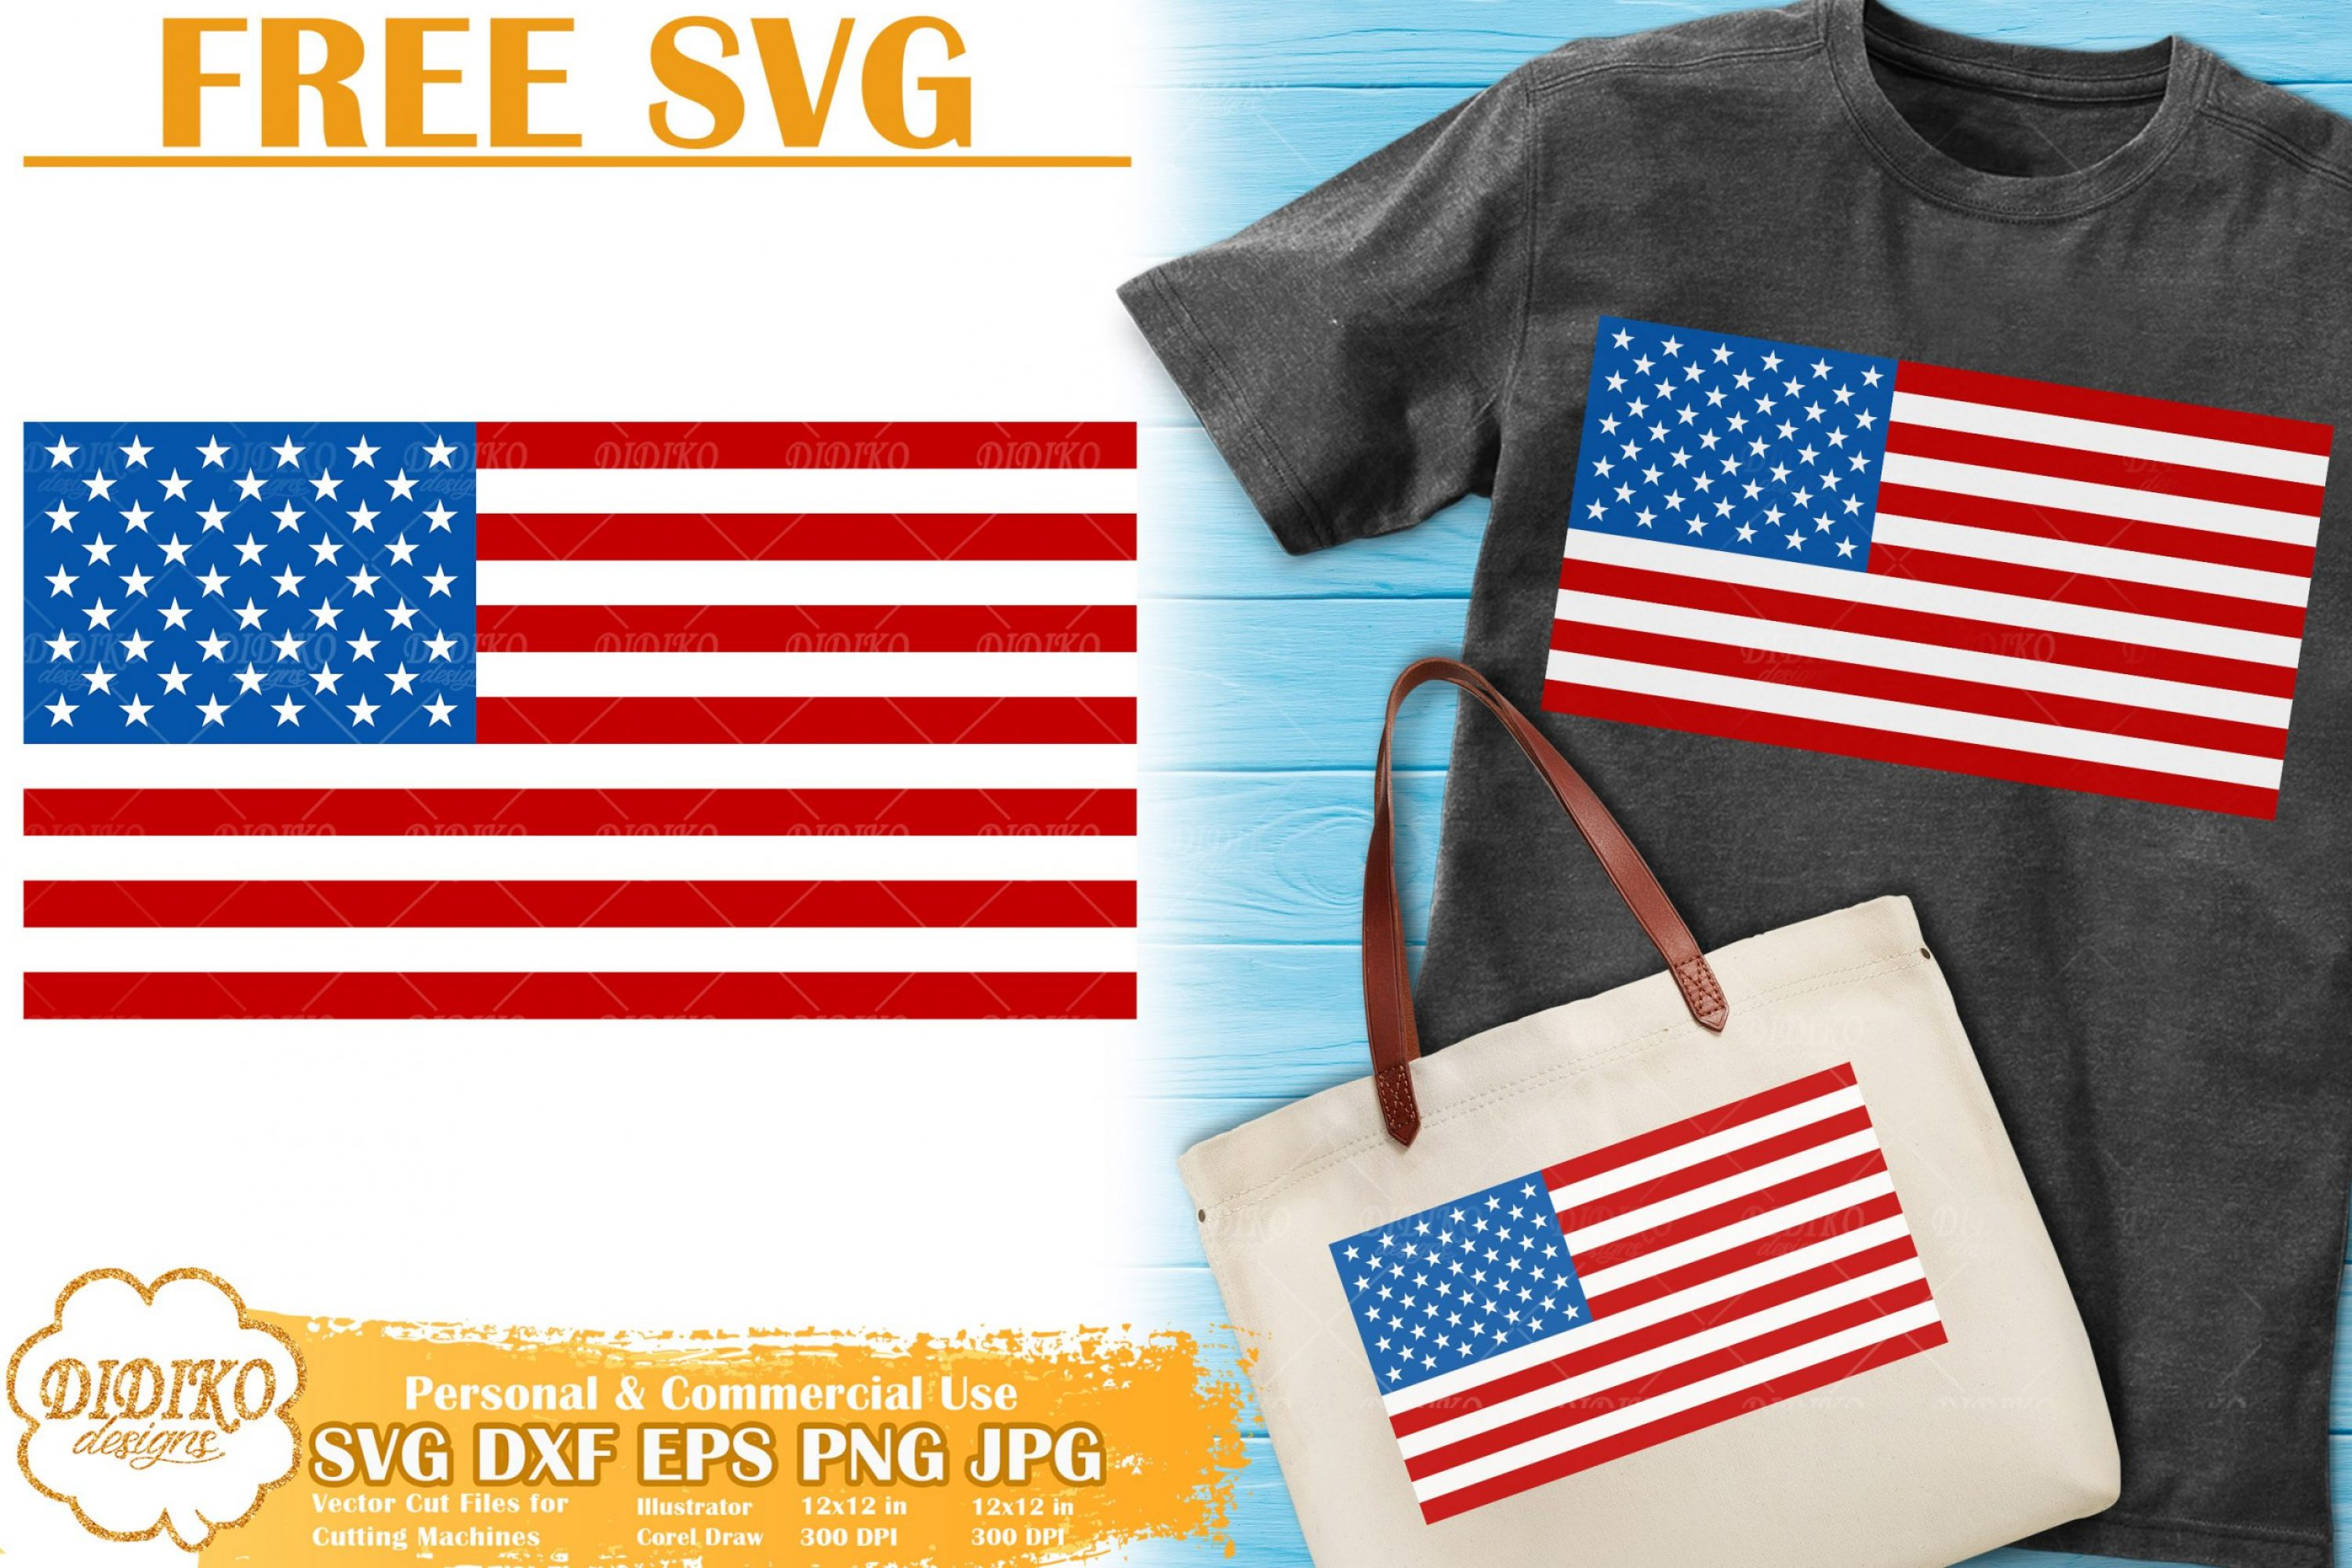 USA Flag Free SVG | 4th of July Free SVG Cricut File